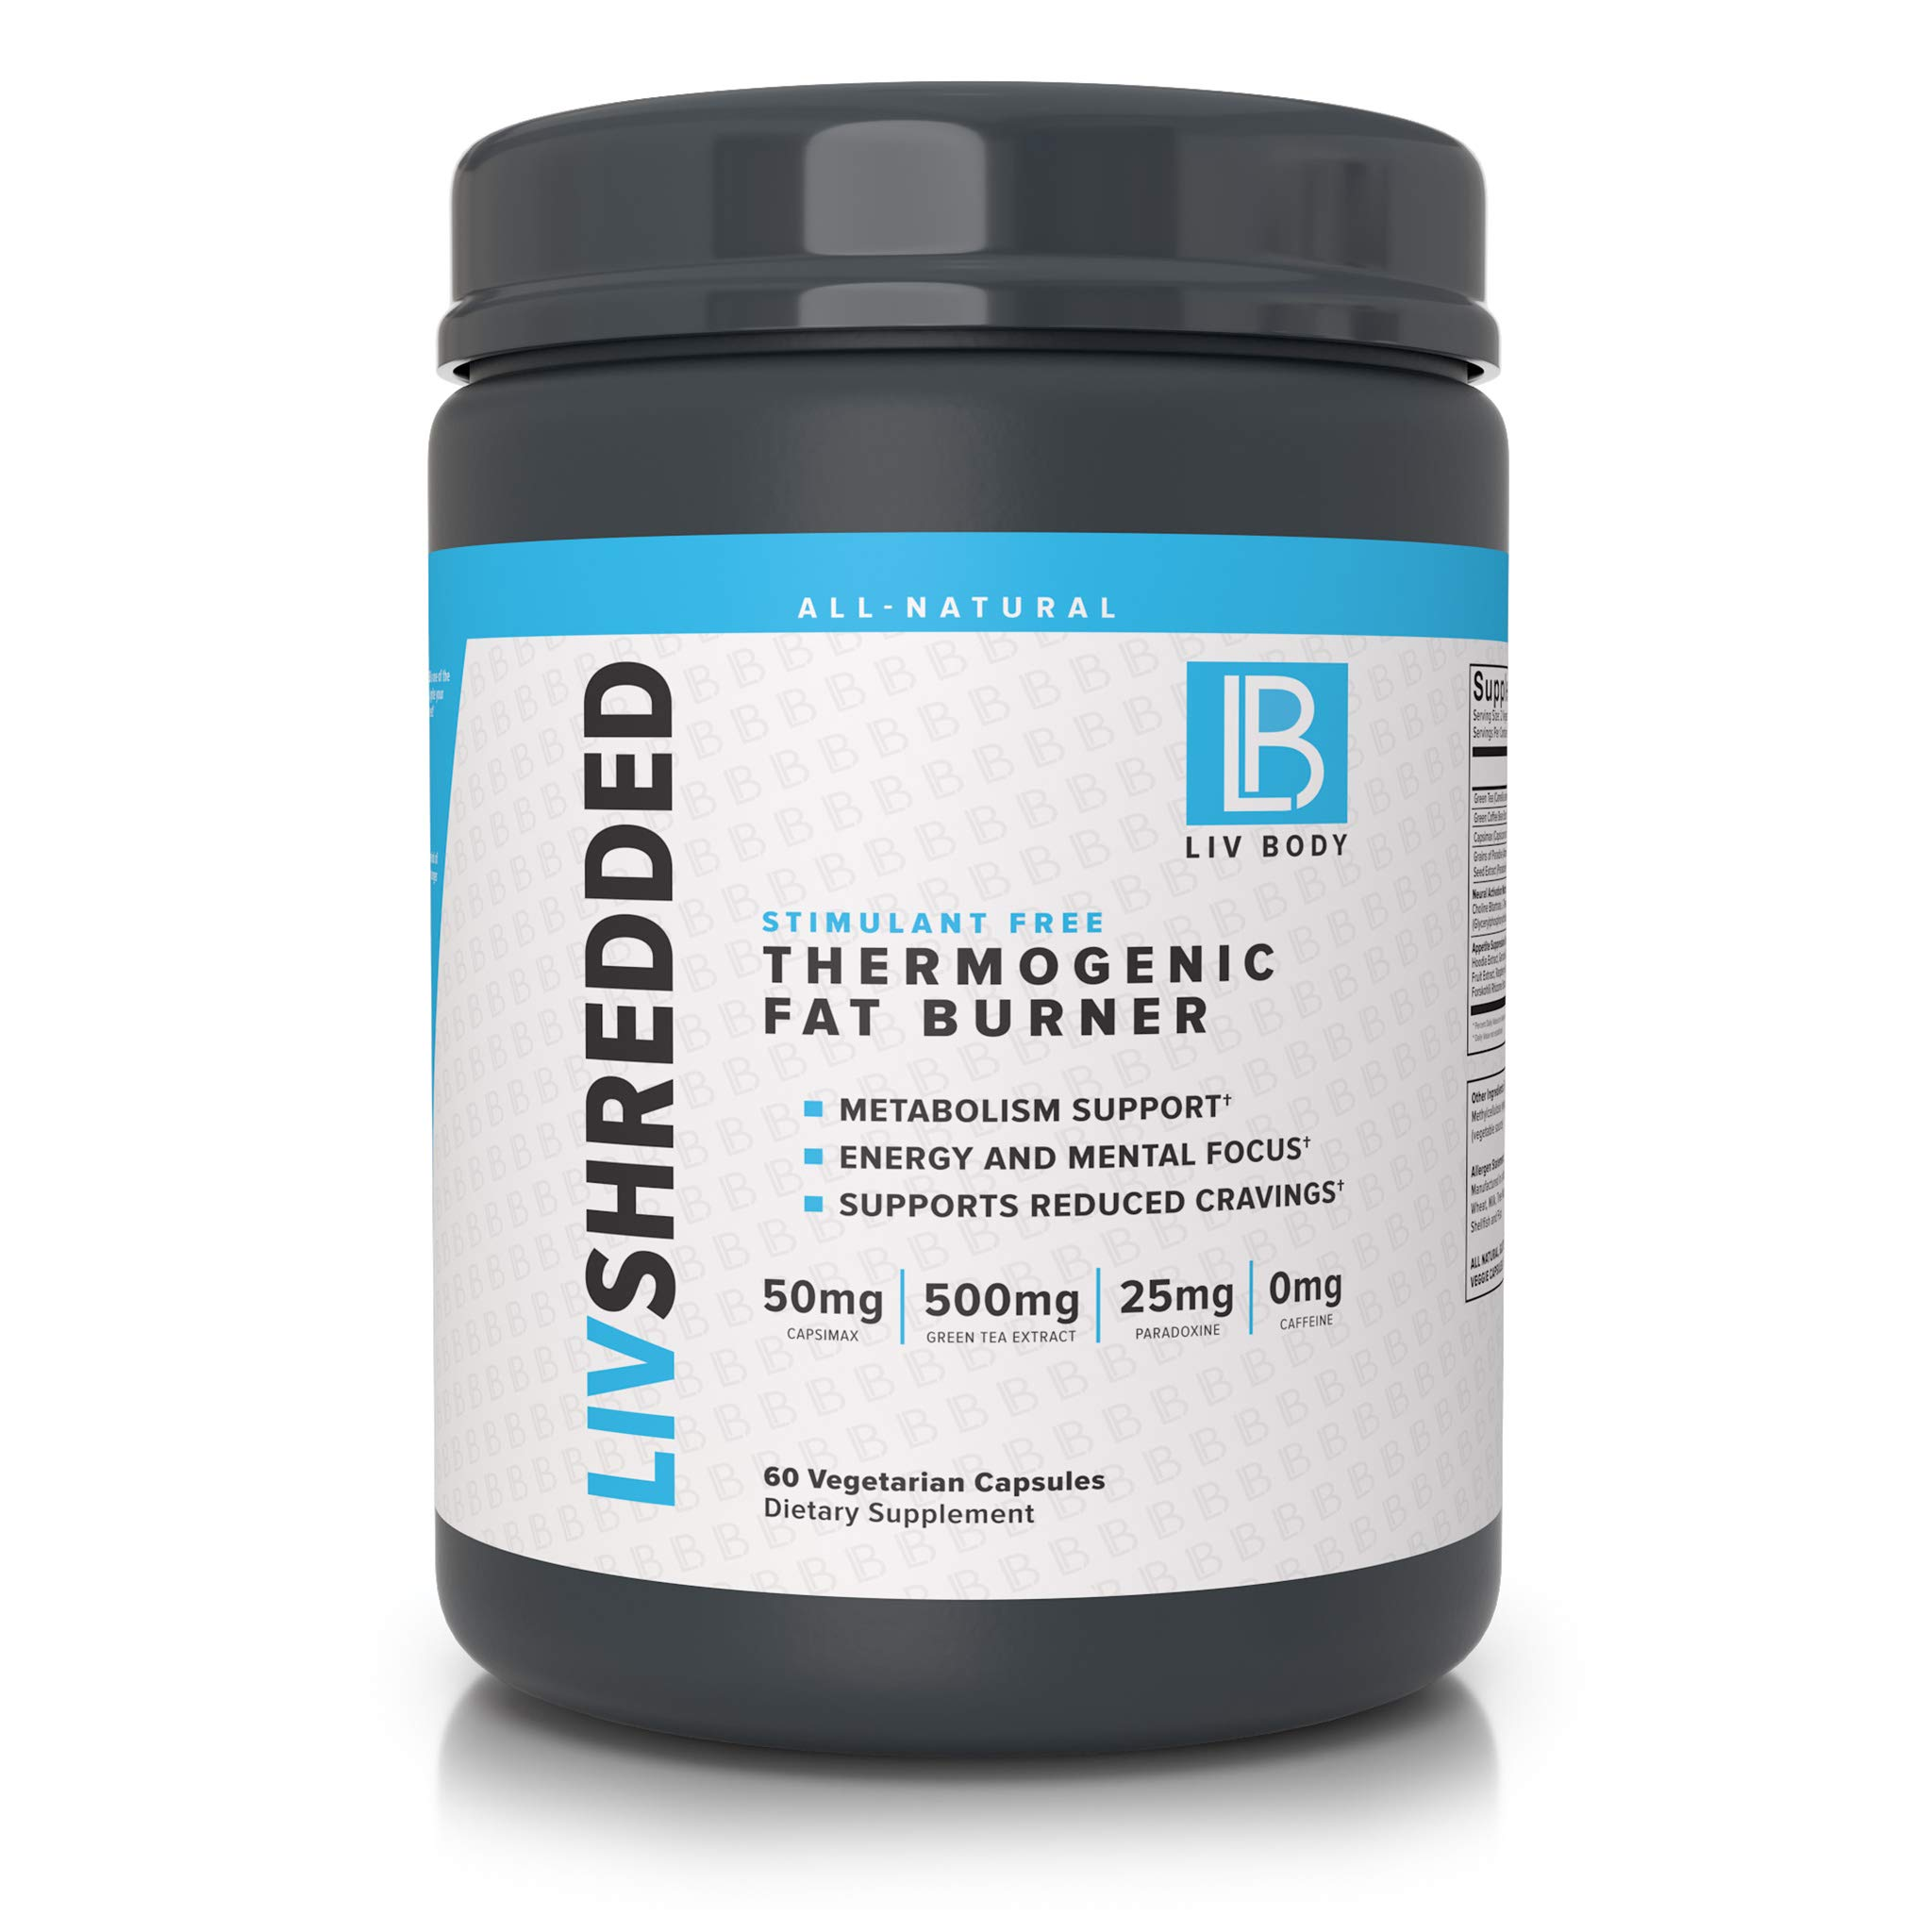 LIV Body   LIV Shredded Stimulant Free Thermogenic Fat Burner   Metabolism Support, Reduces Cravings & Energy and Mental Focus   60 Vegetarian Capsules